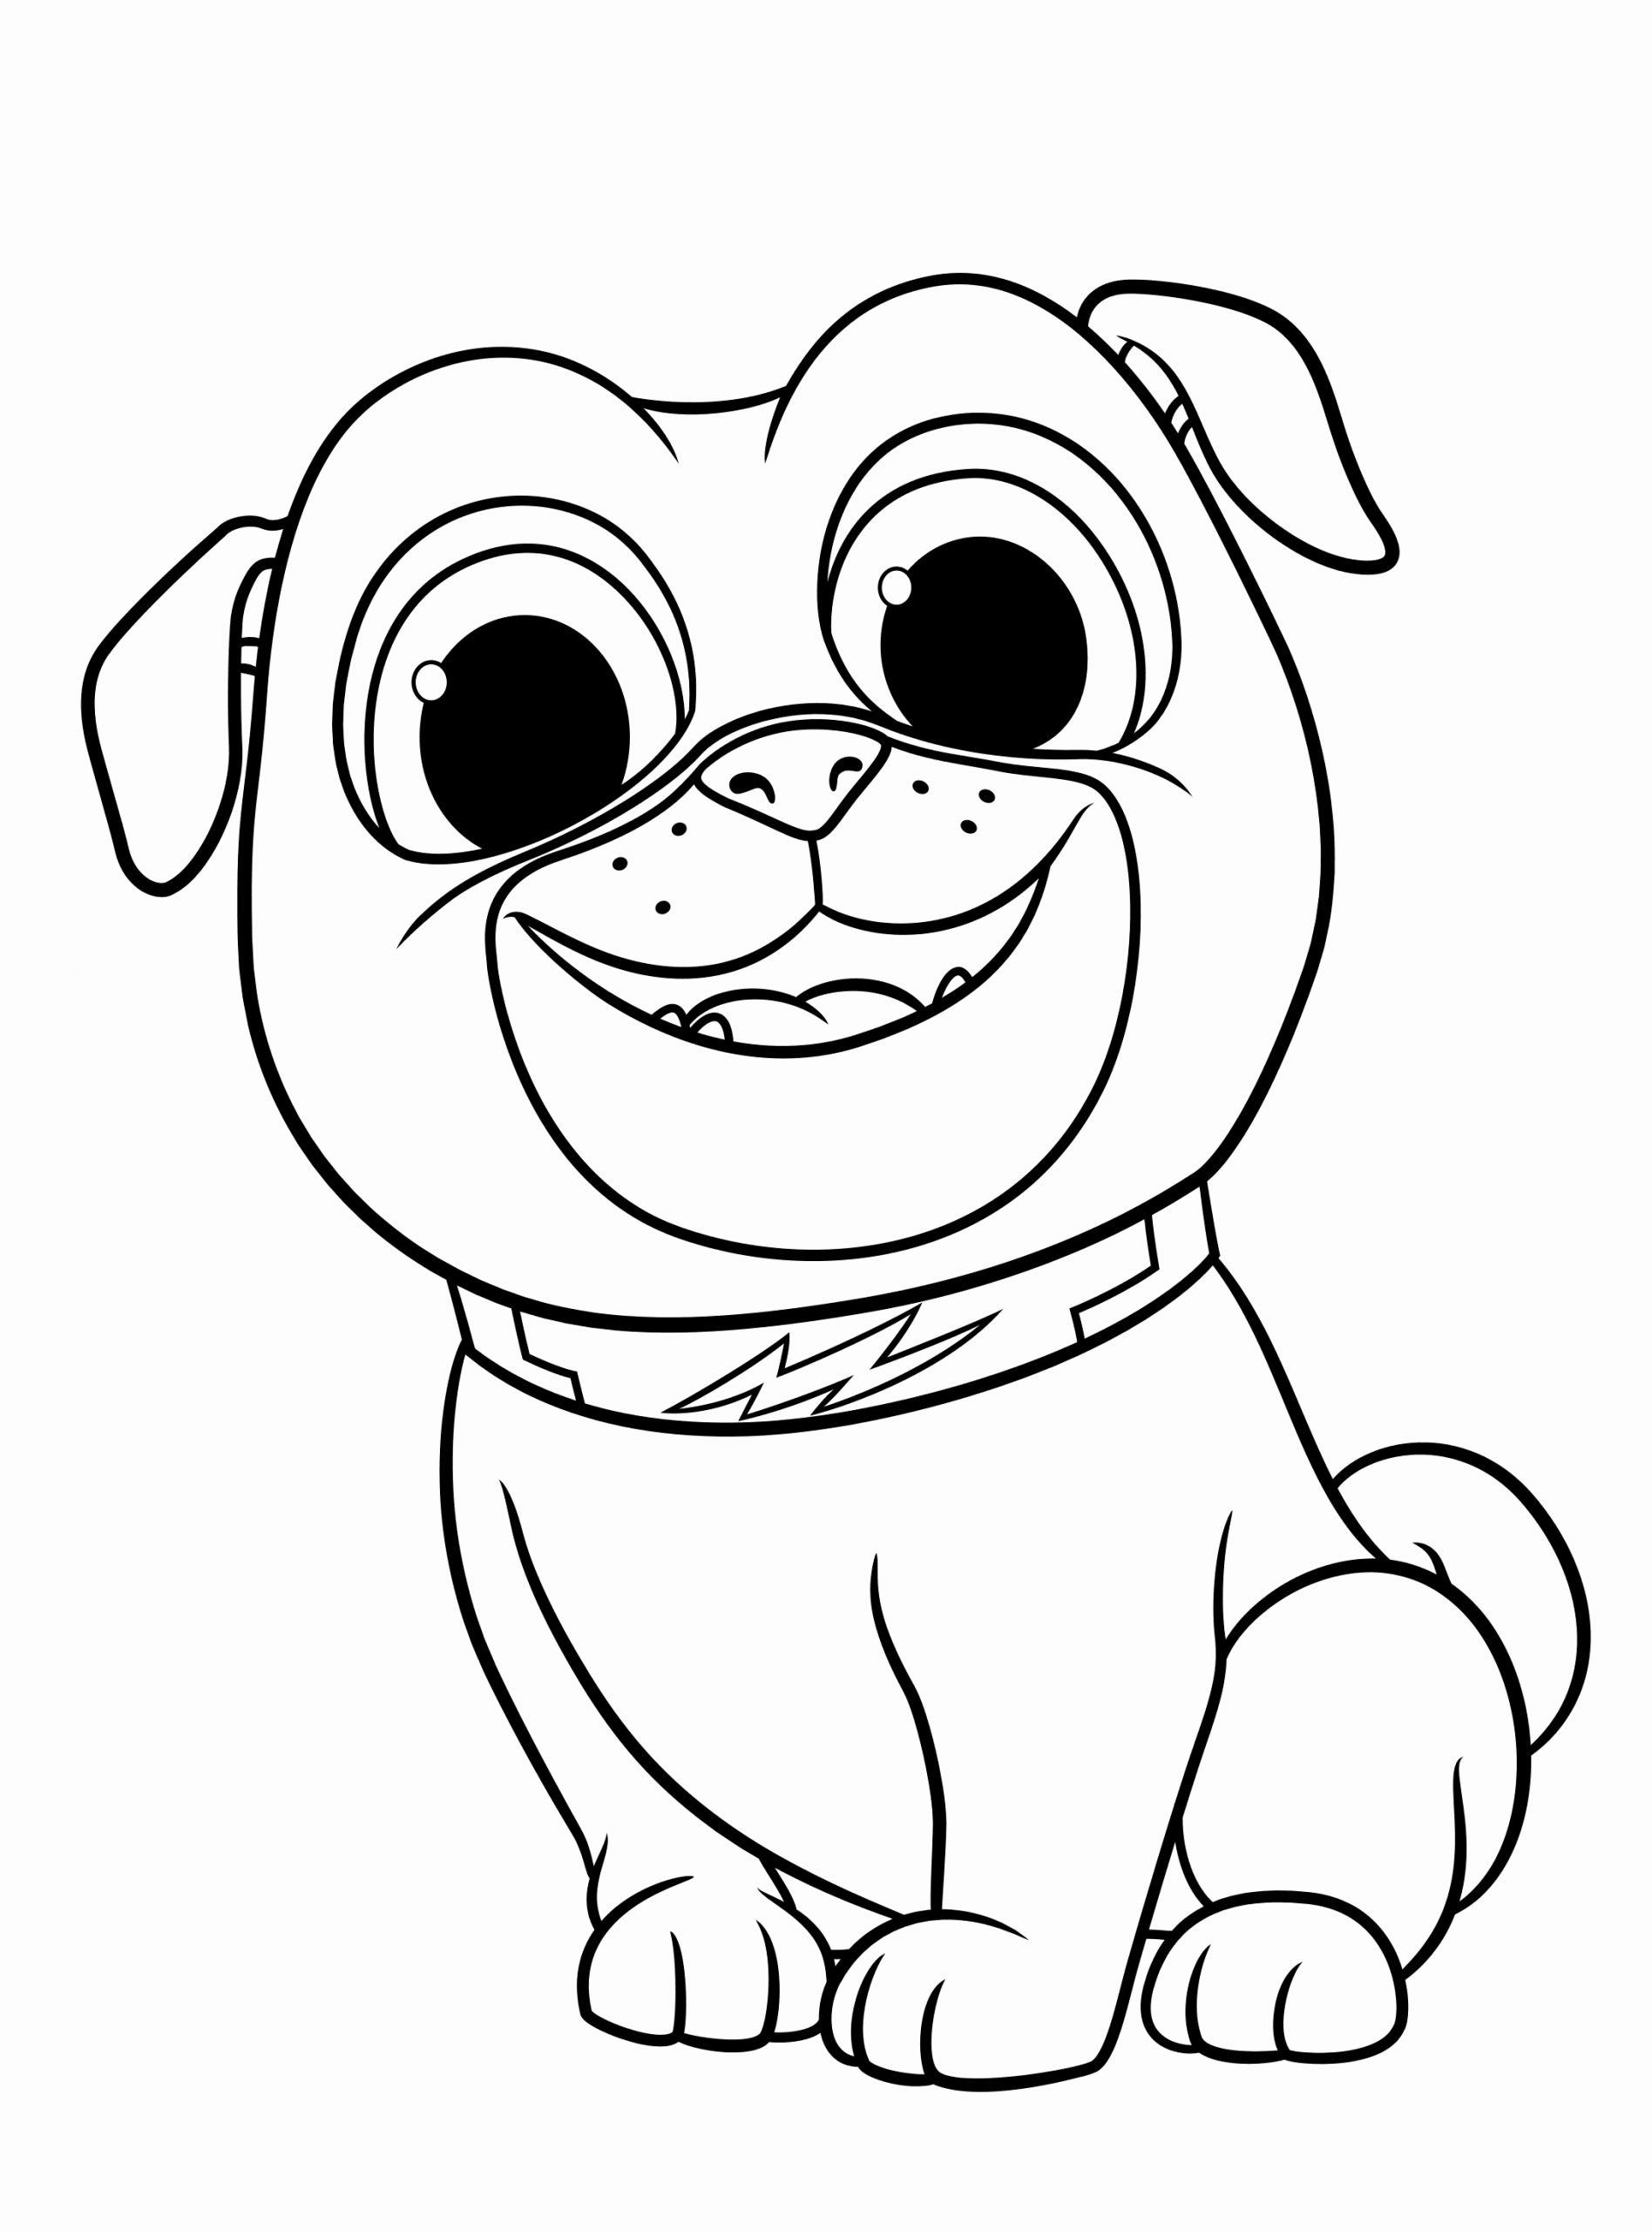 Puppy Dog Pals Coloring Page Beautiful Puppy Pals Coloring Pages At Getdrawings In 2020 Puppy Coloring Pages Dog Coloring Page Unicorn Coloring Pages